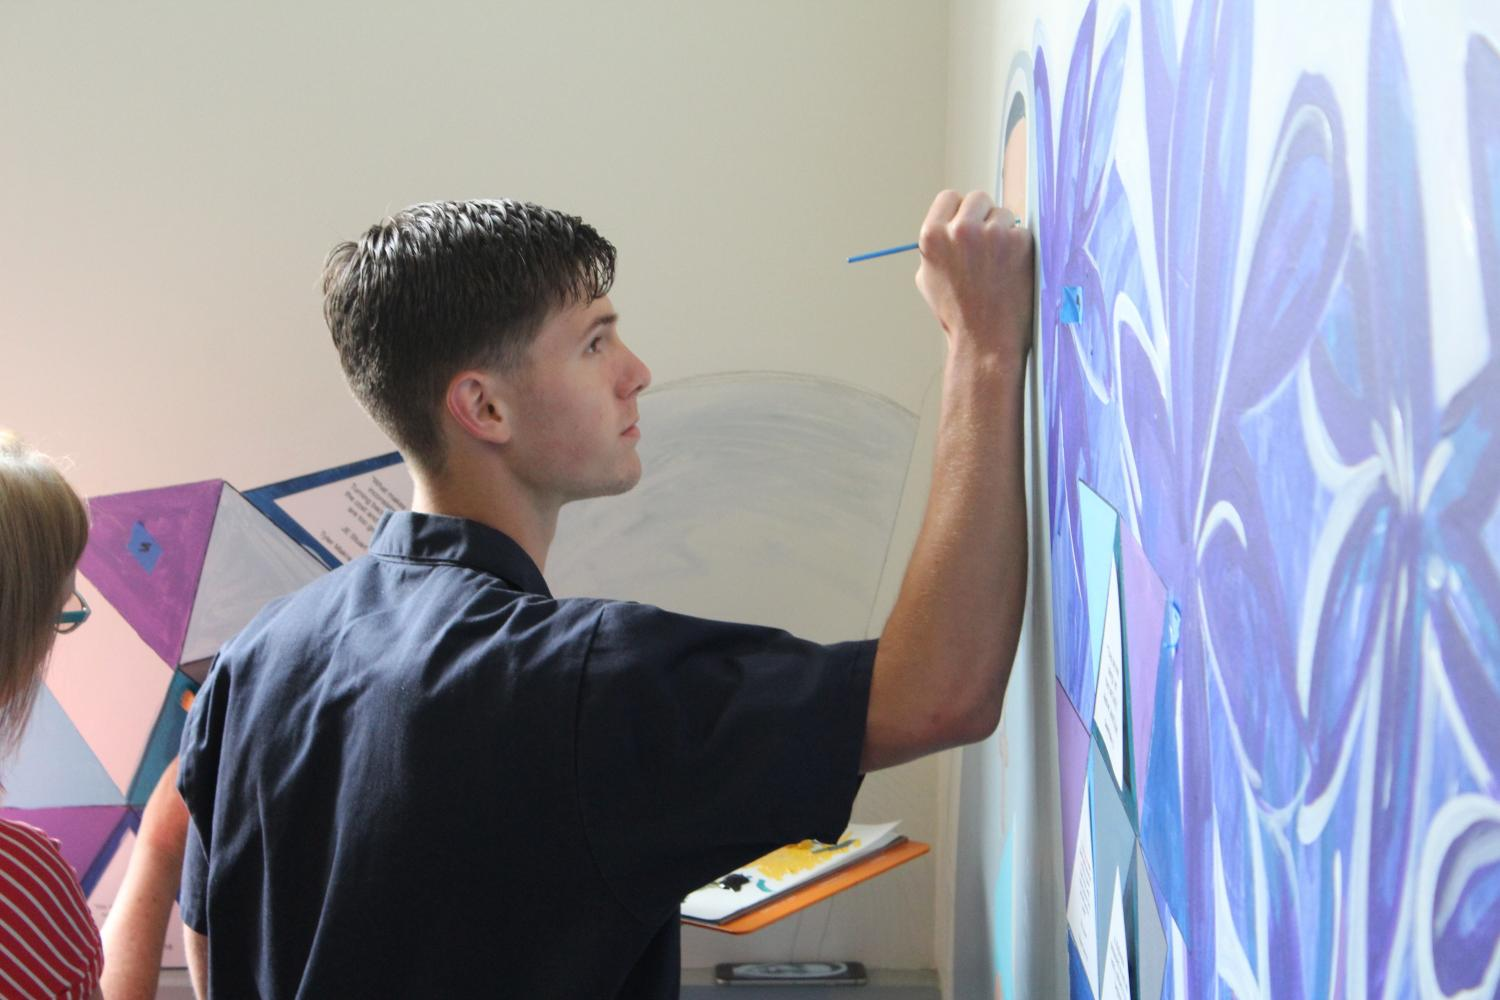 Edward Emery '17 works on the mural at the Pine & Octavia campus. Emery assisted Artist-in-Residence Patter Hellstrom in finishing the mural that every junior has contributed to.